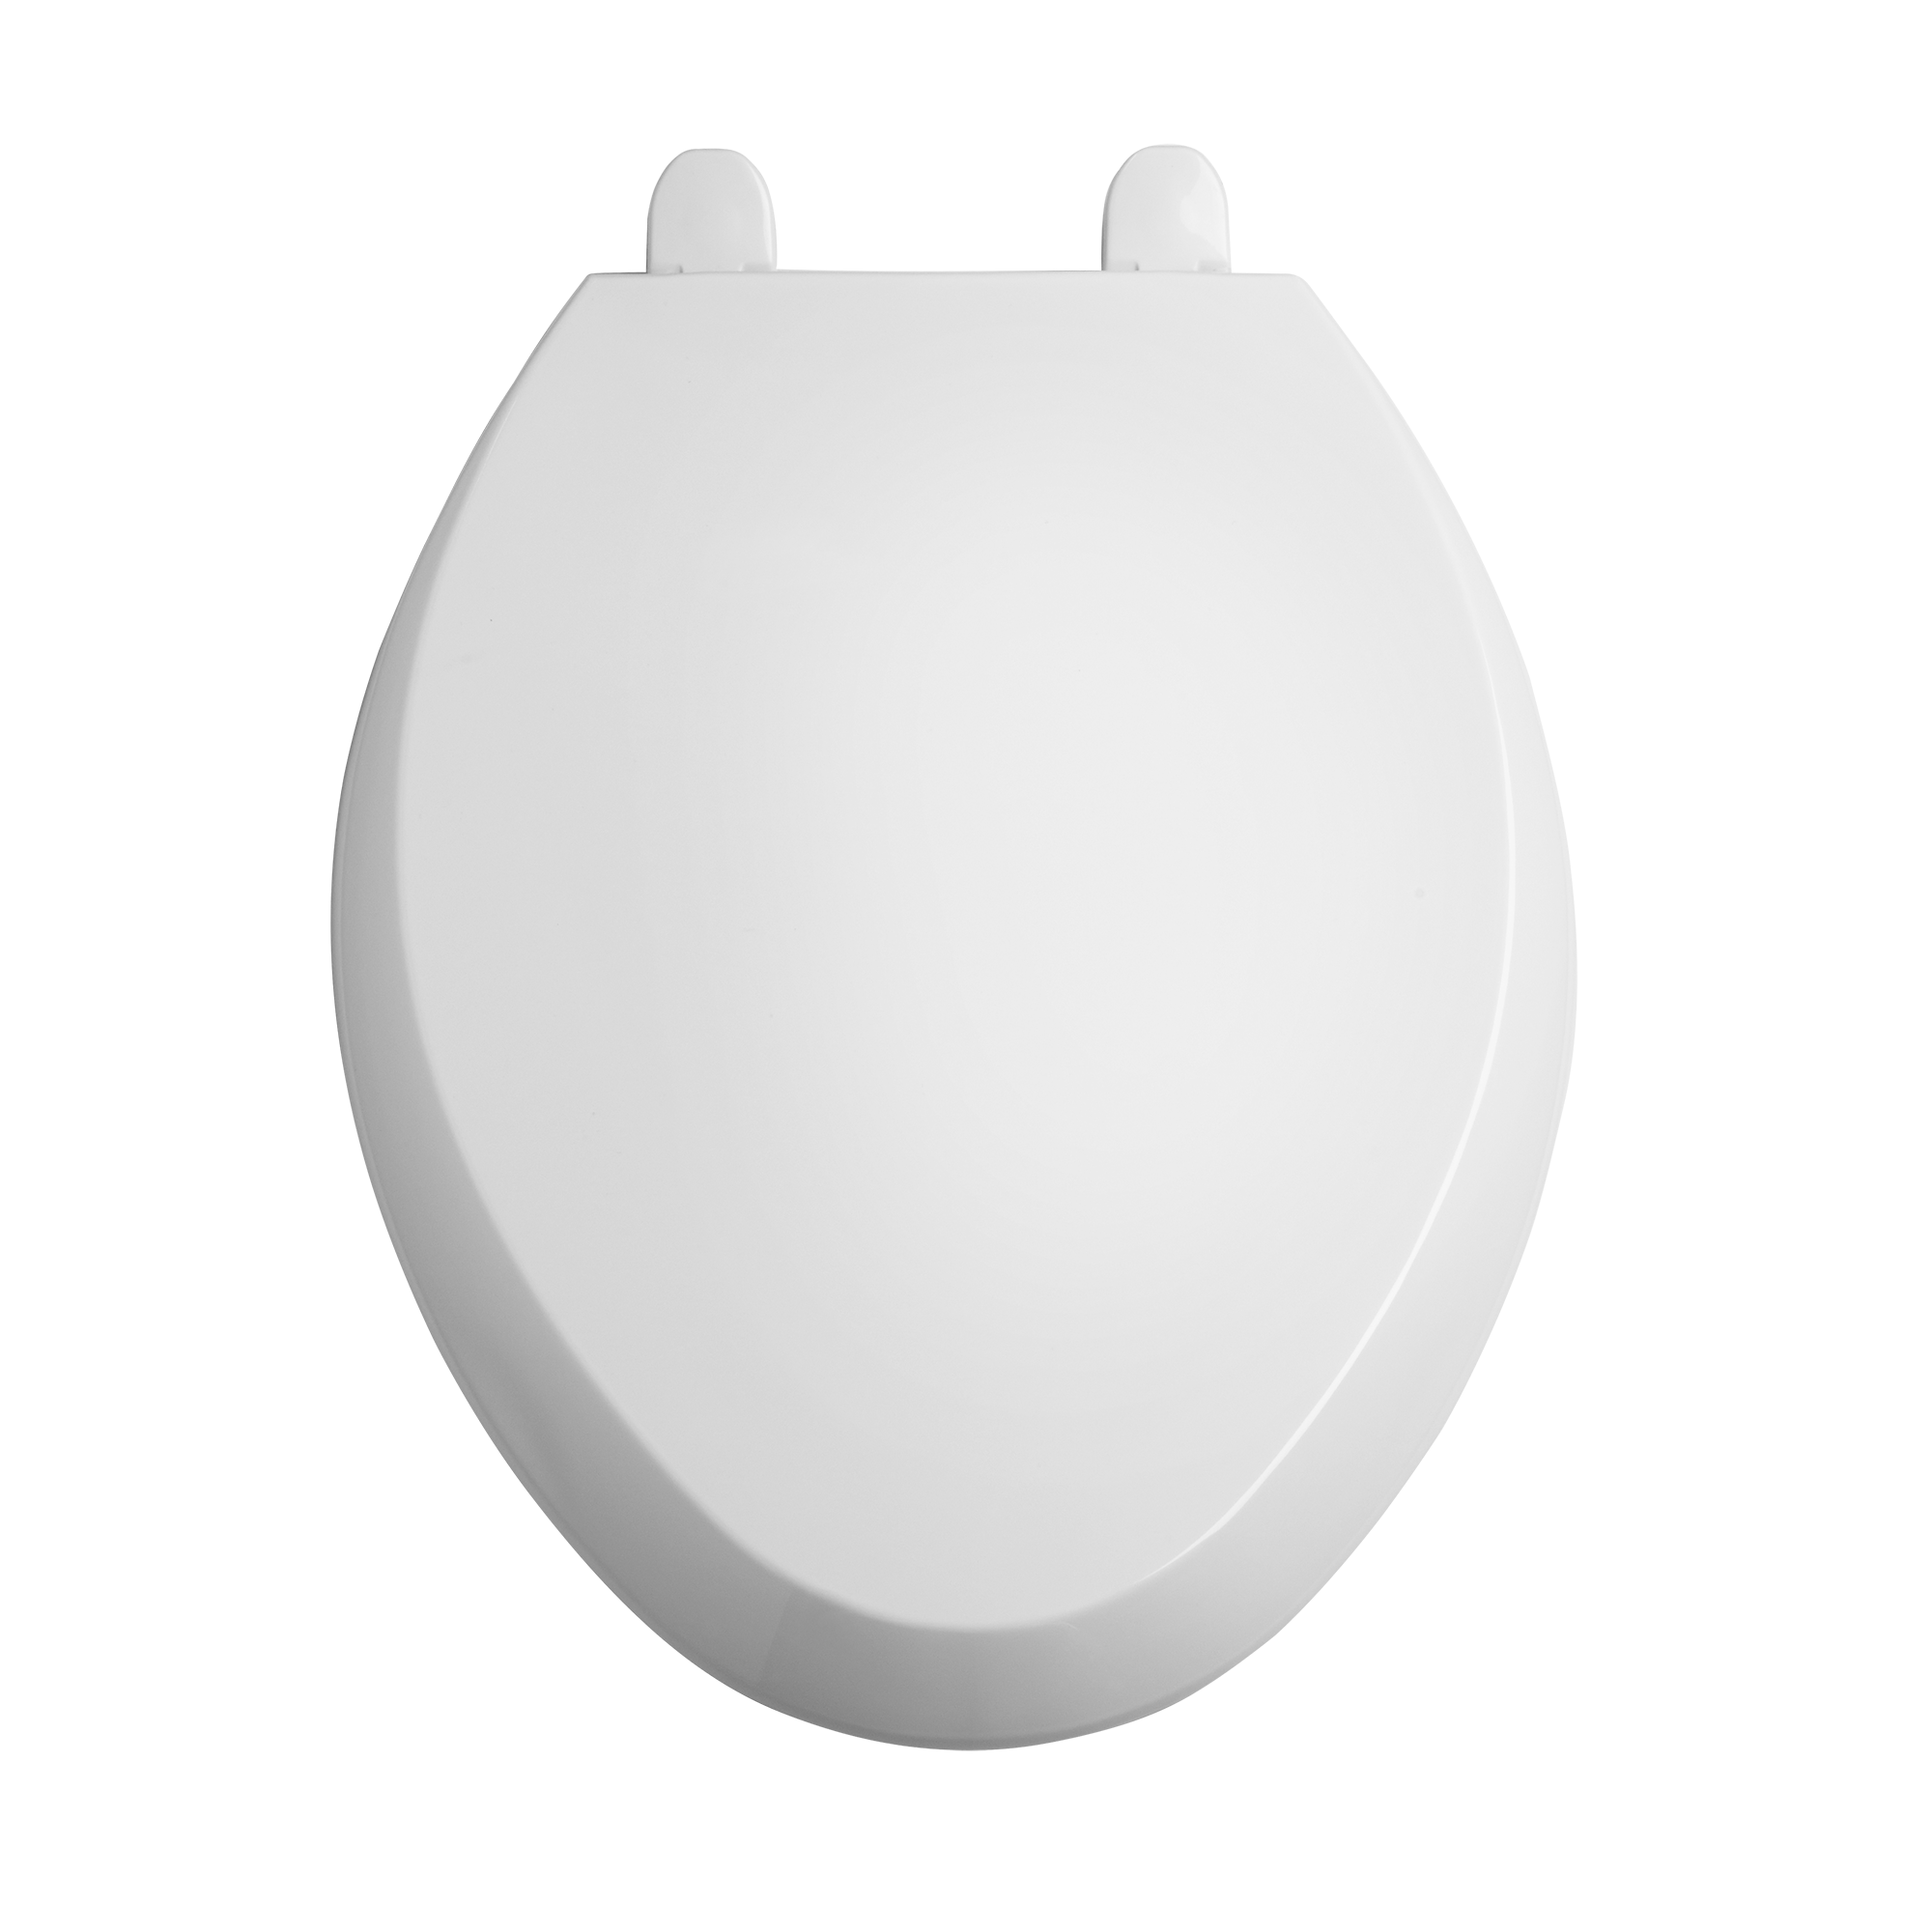 Toilet top view png. Encompass telespcoping slow close